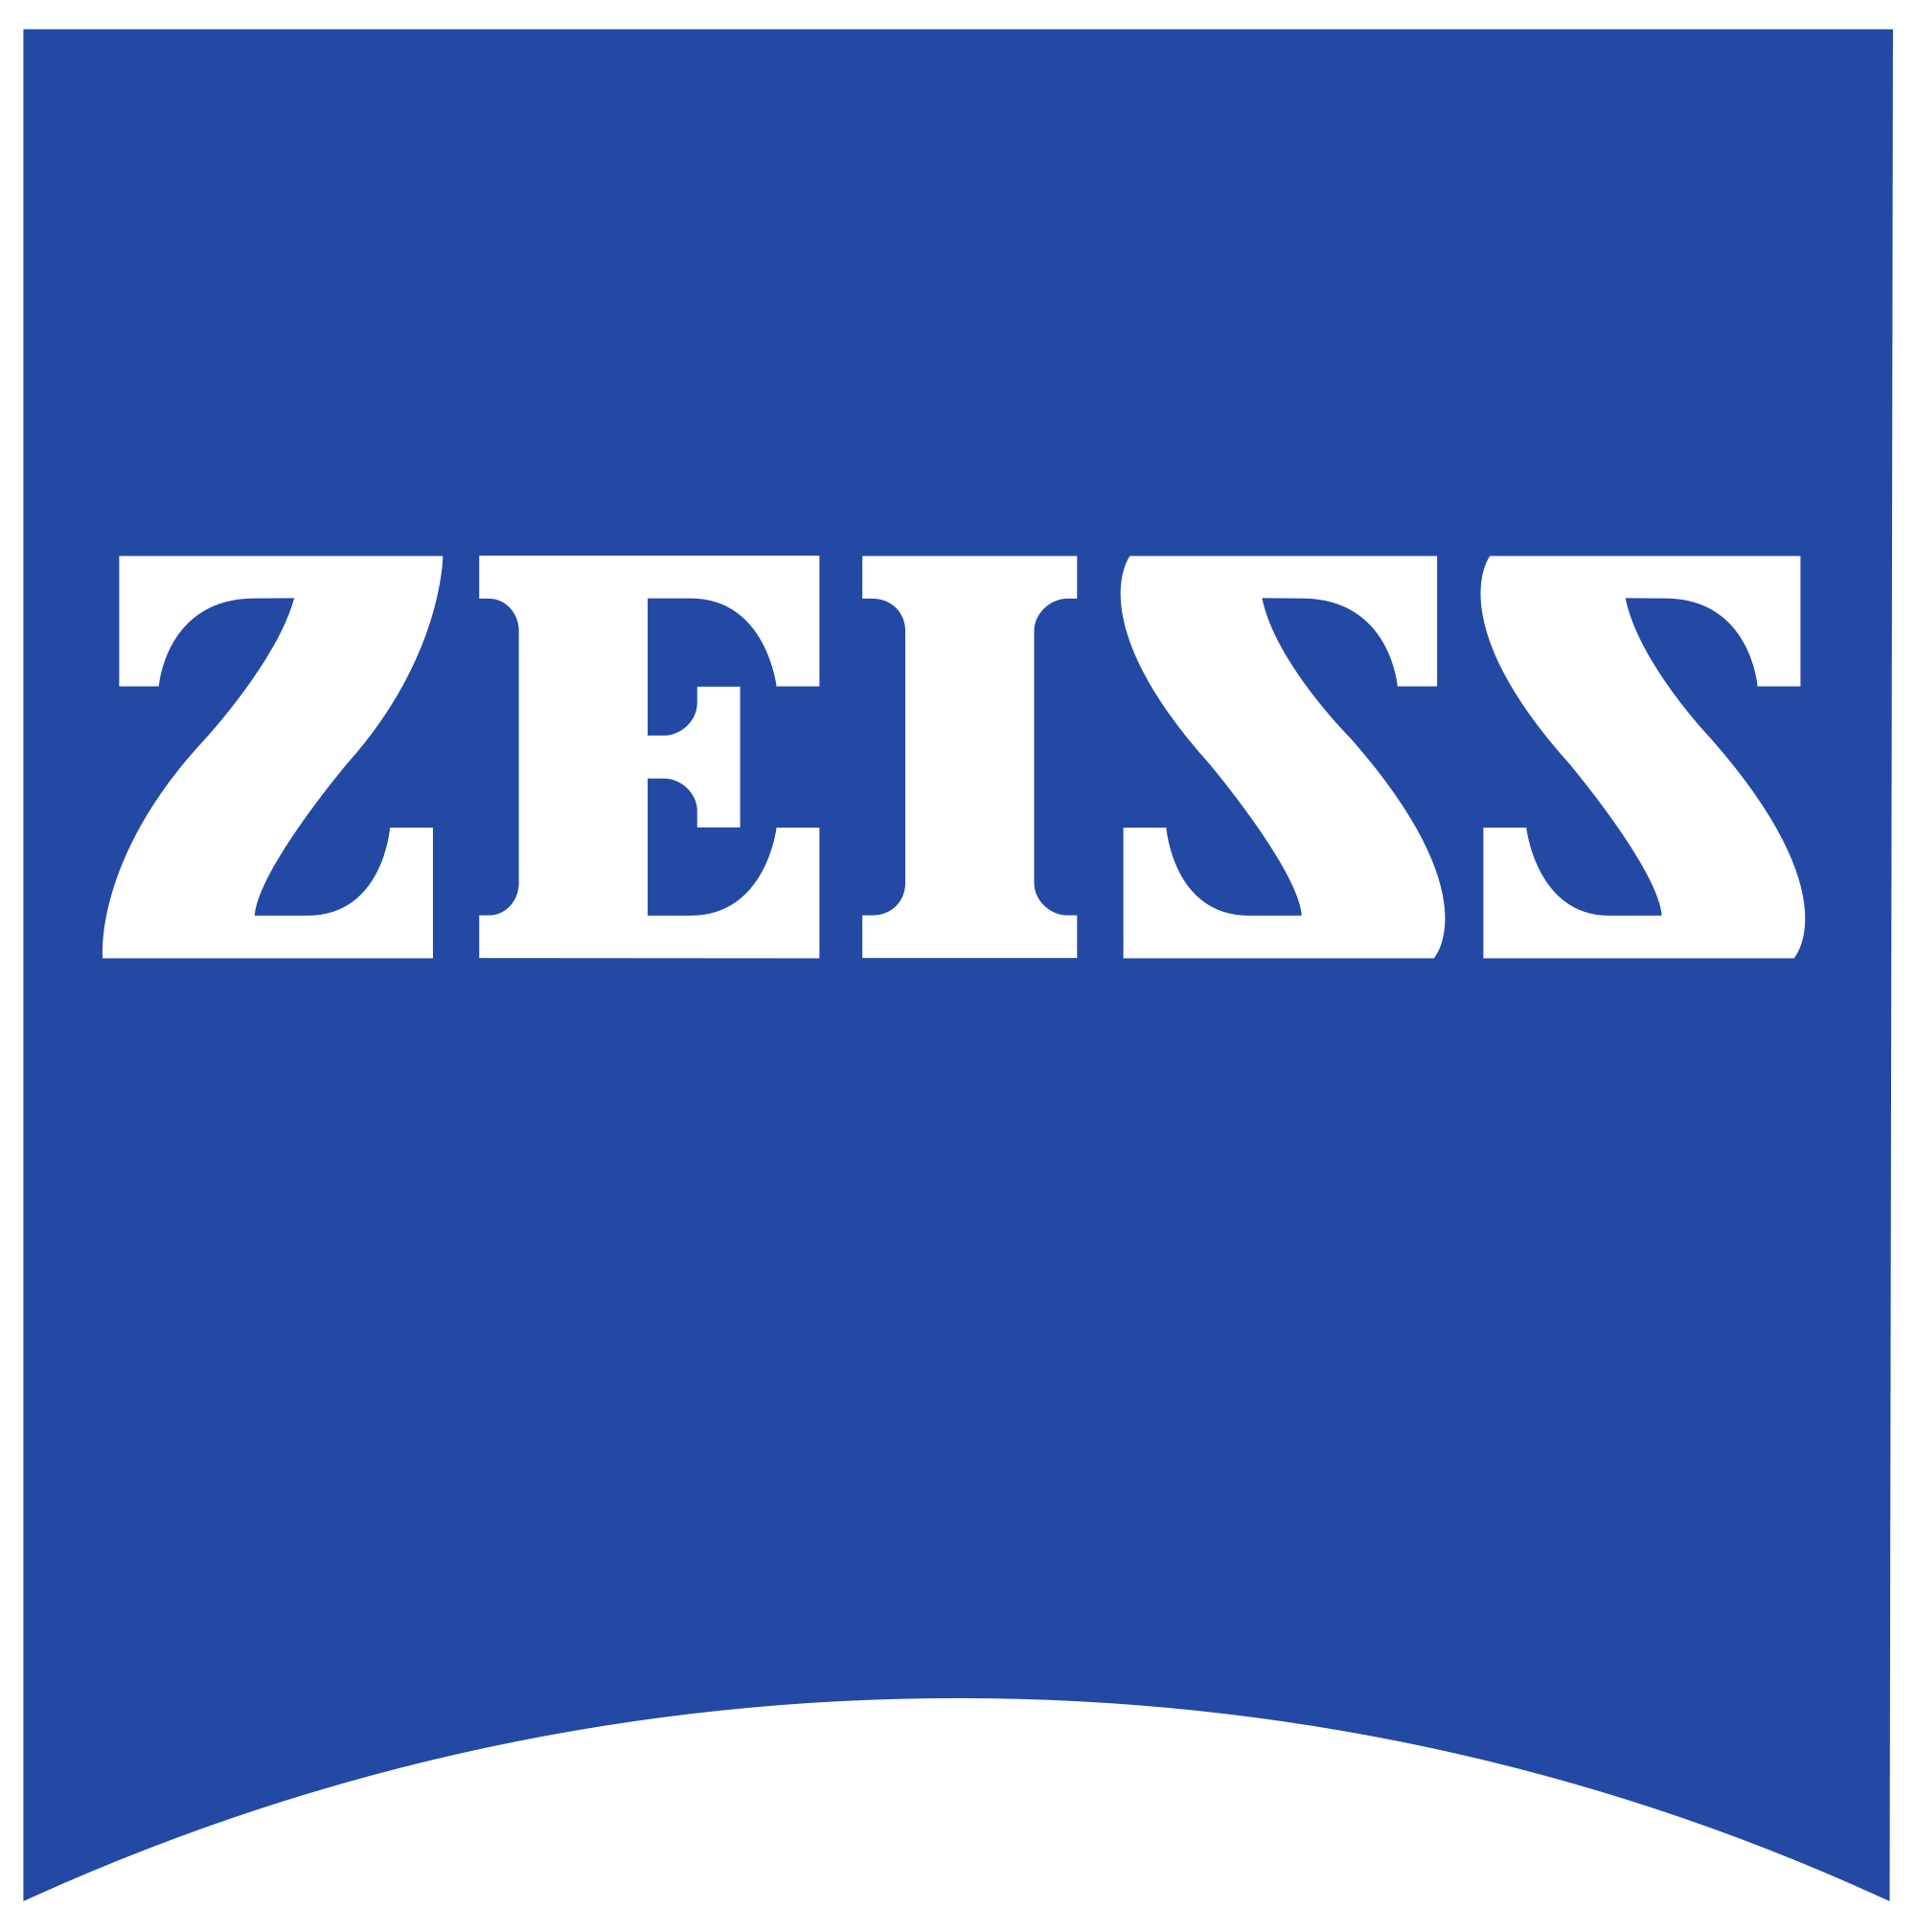 Carl_Zeiss_Logo.png